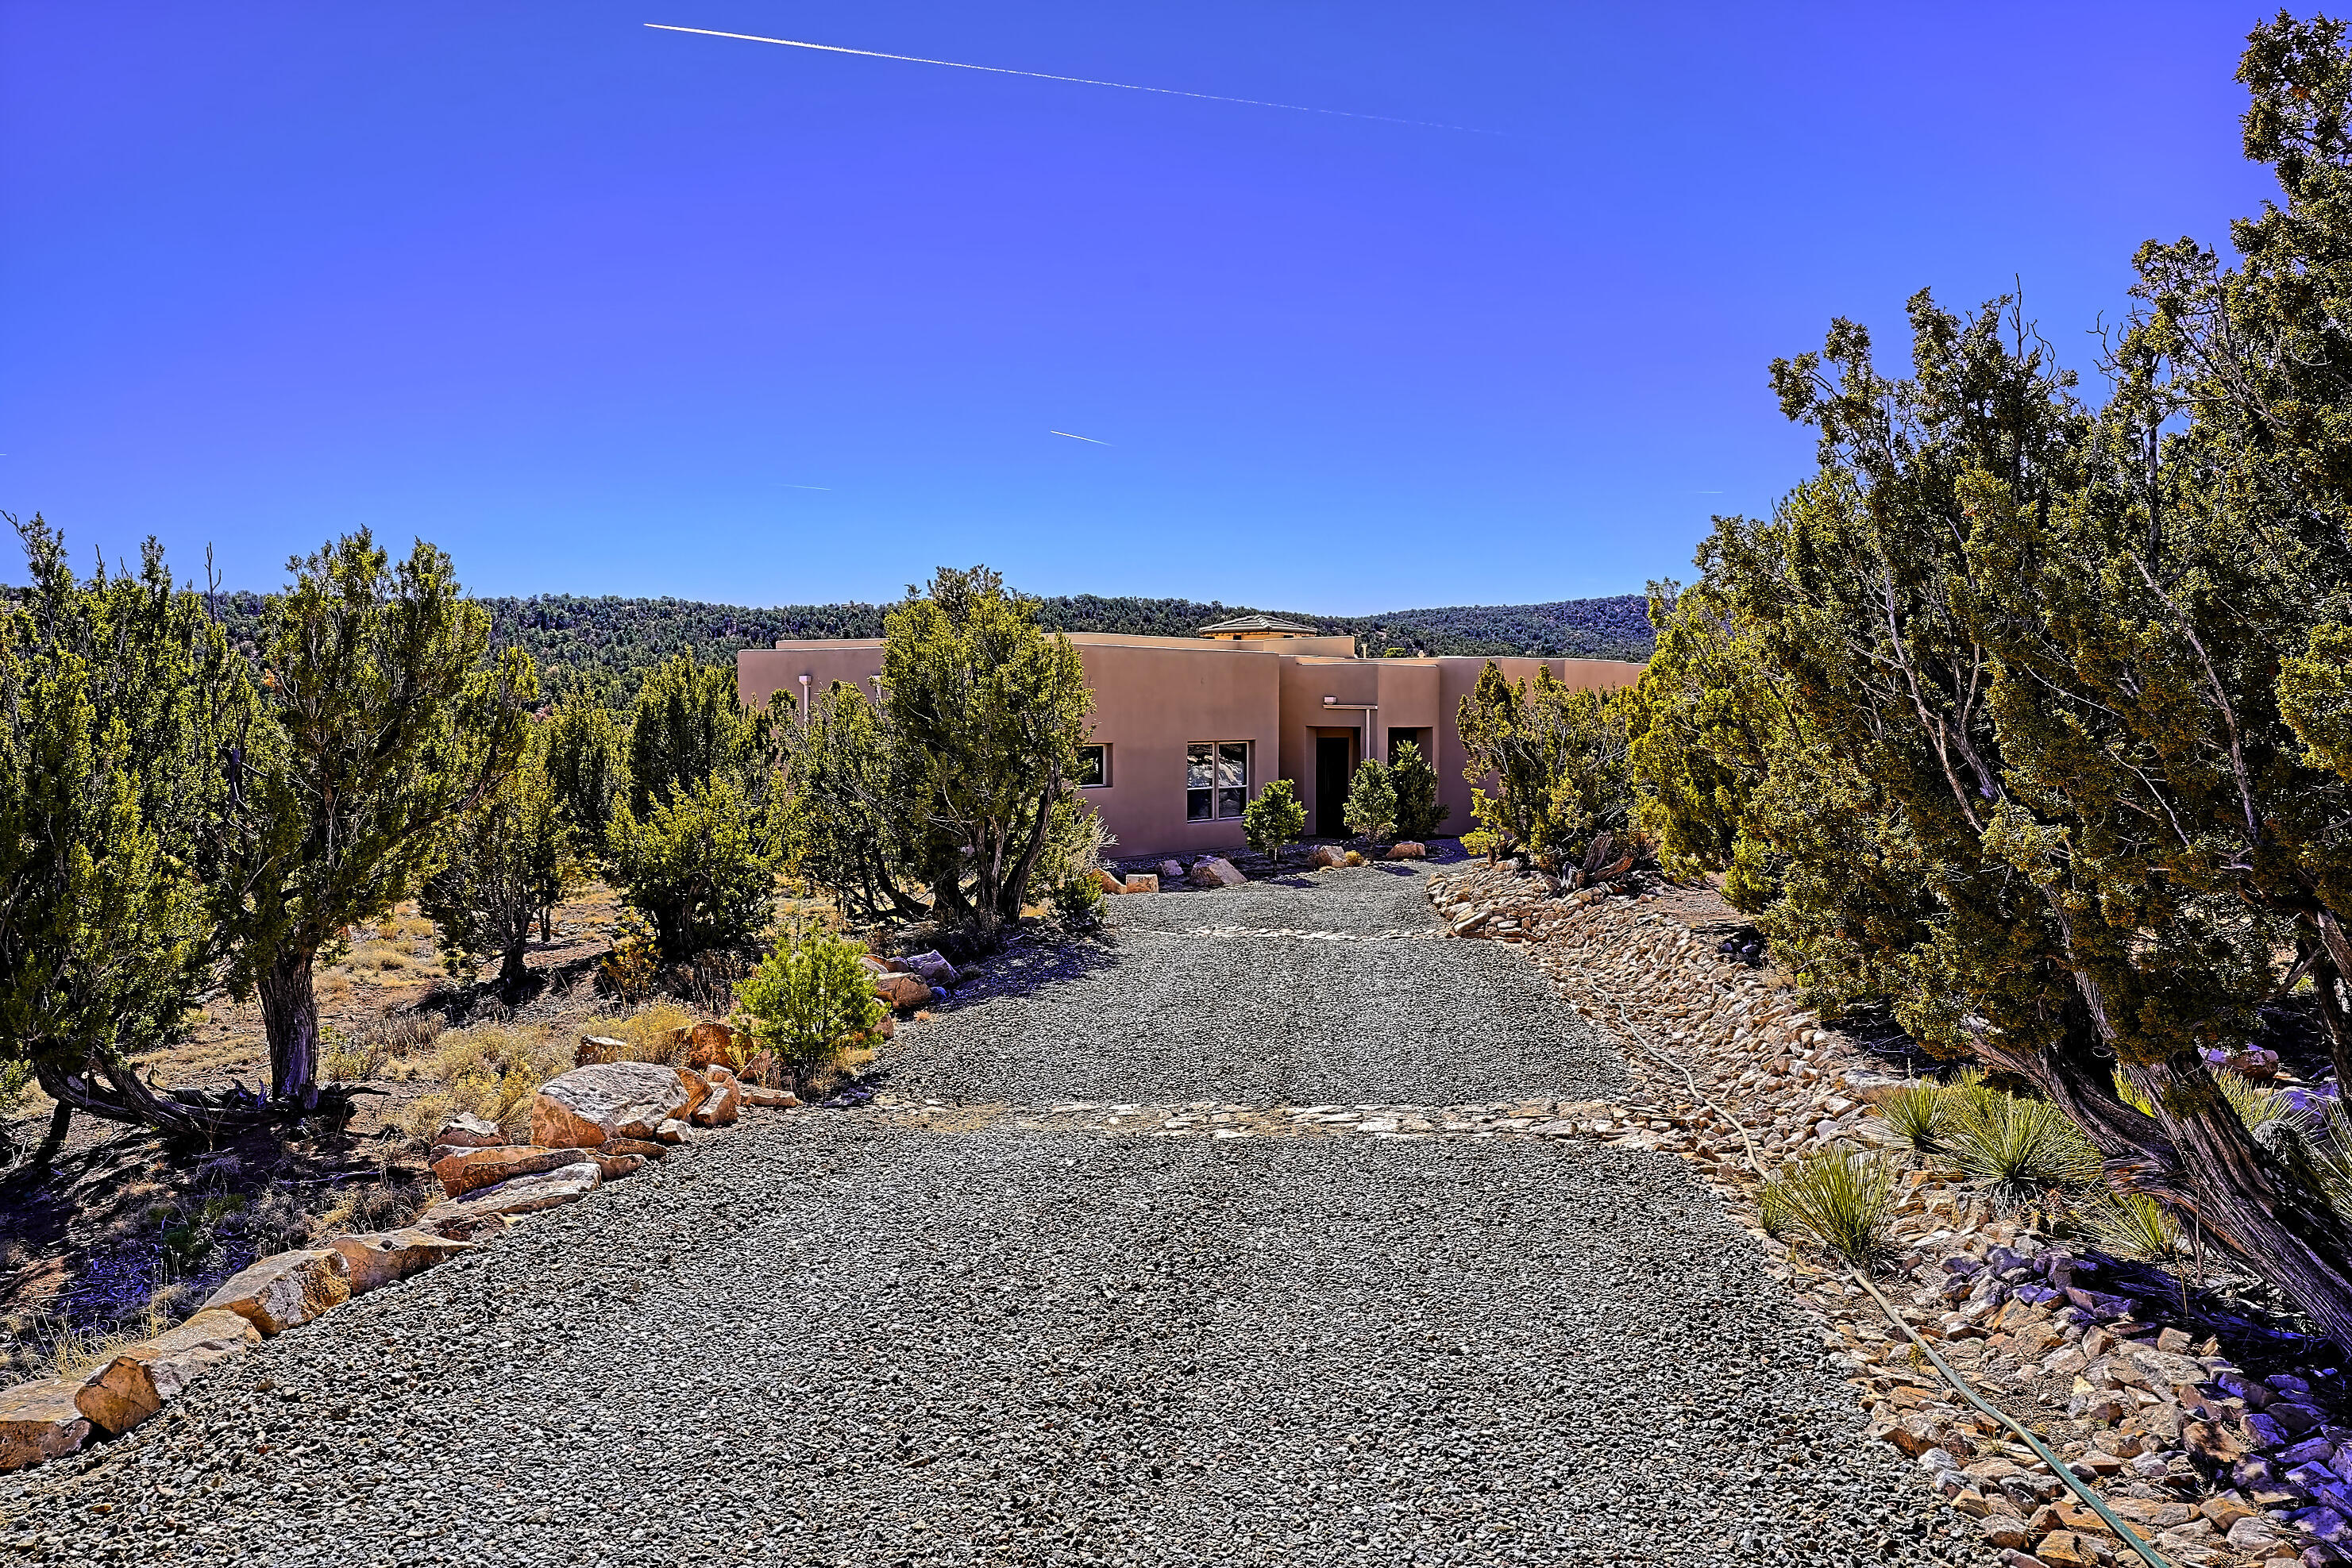 Stunning Panorama Pueblo Style Home Nestled Next to the Paa Ko  Ridge Golf Course! From the Beautiful Foyer You will enter into the welcoming great Room with its stone stacked fireplace, effortlessly opens into the Gourmet Kitchen with High End Stainless Appliances, Huge Island, Gorgeous Granite, Roomy Pantry along with Well-Designed Living Spaces Displaying Elegance and Quality throughout. Incredible Covered Patio Complete with Outdoor Kitchen Grill and Prep Sink Overlooking the Finish of Hole #1.  Master Bathroom Boasts Double Sinks, Jetted tub and Awesome Snail Shower.  Oversized Three Car Garage has a Finished storage room. Brand new TPO Roof. Private gated Area in Fabulous Paa-Ko with Natural gas & Community Water along with the Club House, Pool, Tennis, Golf and Remodeled Restaura